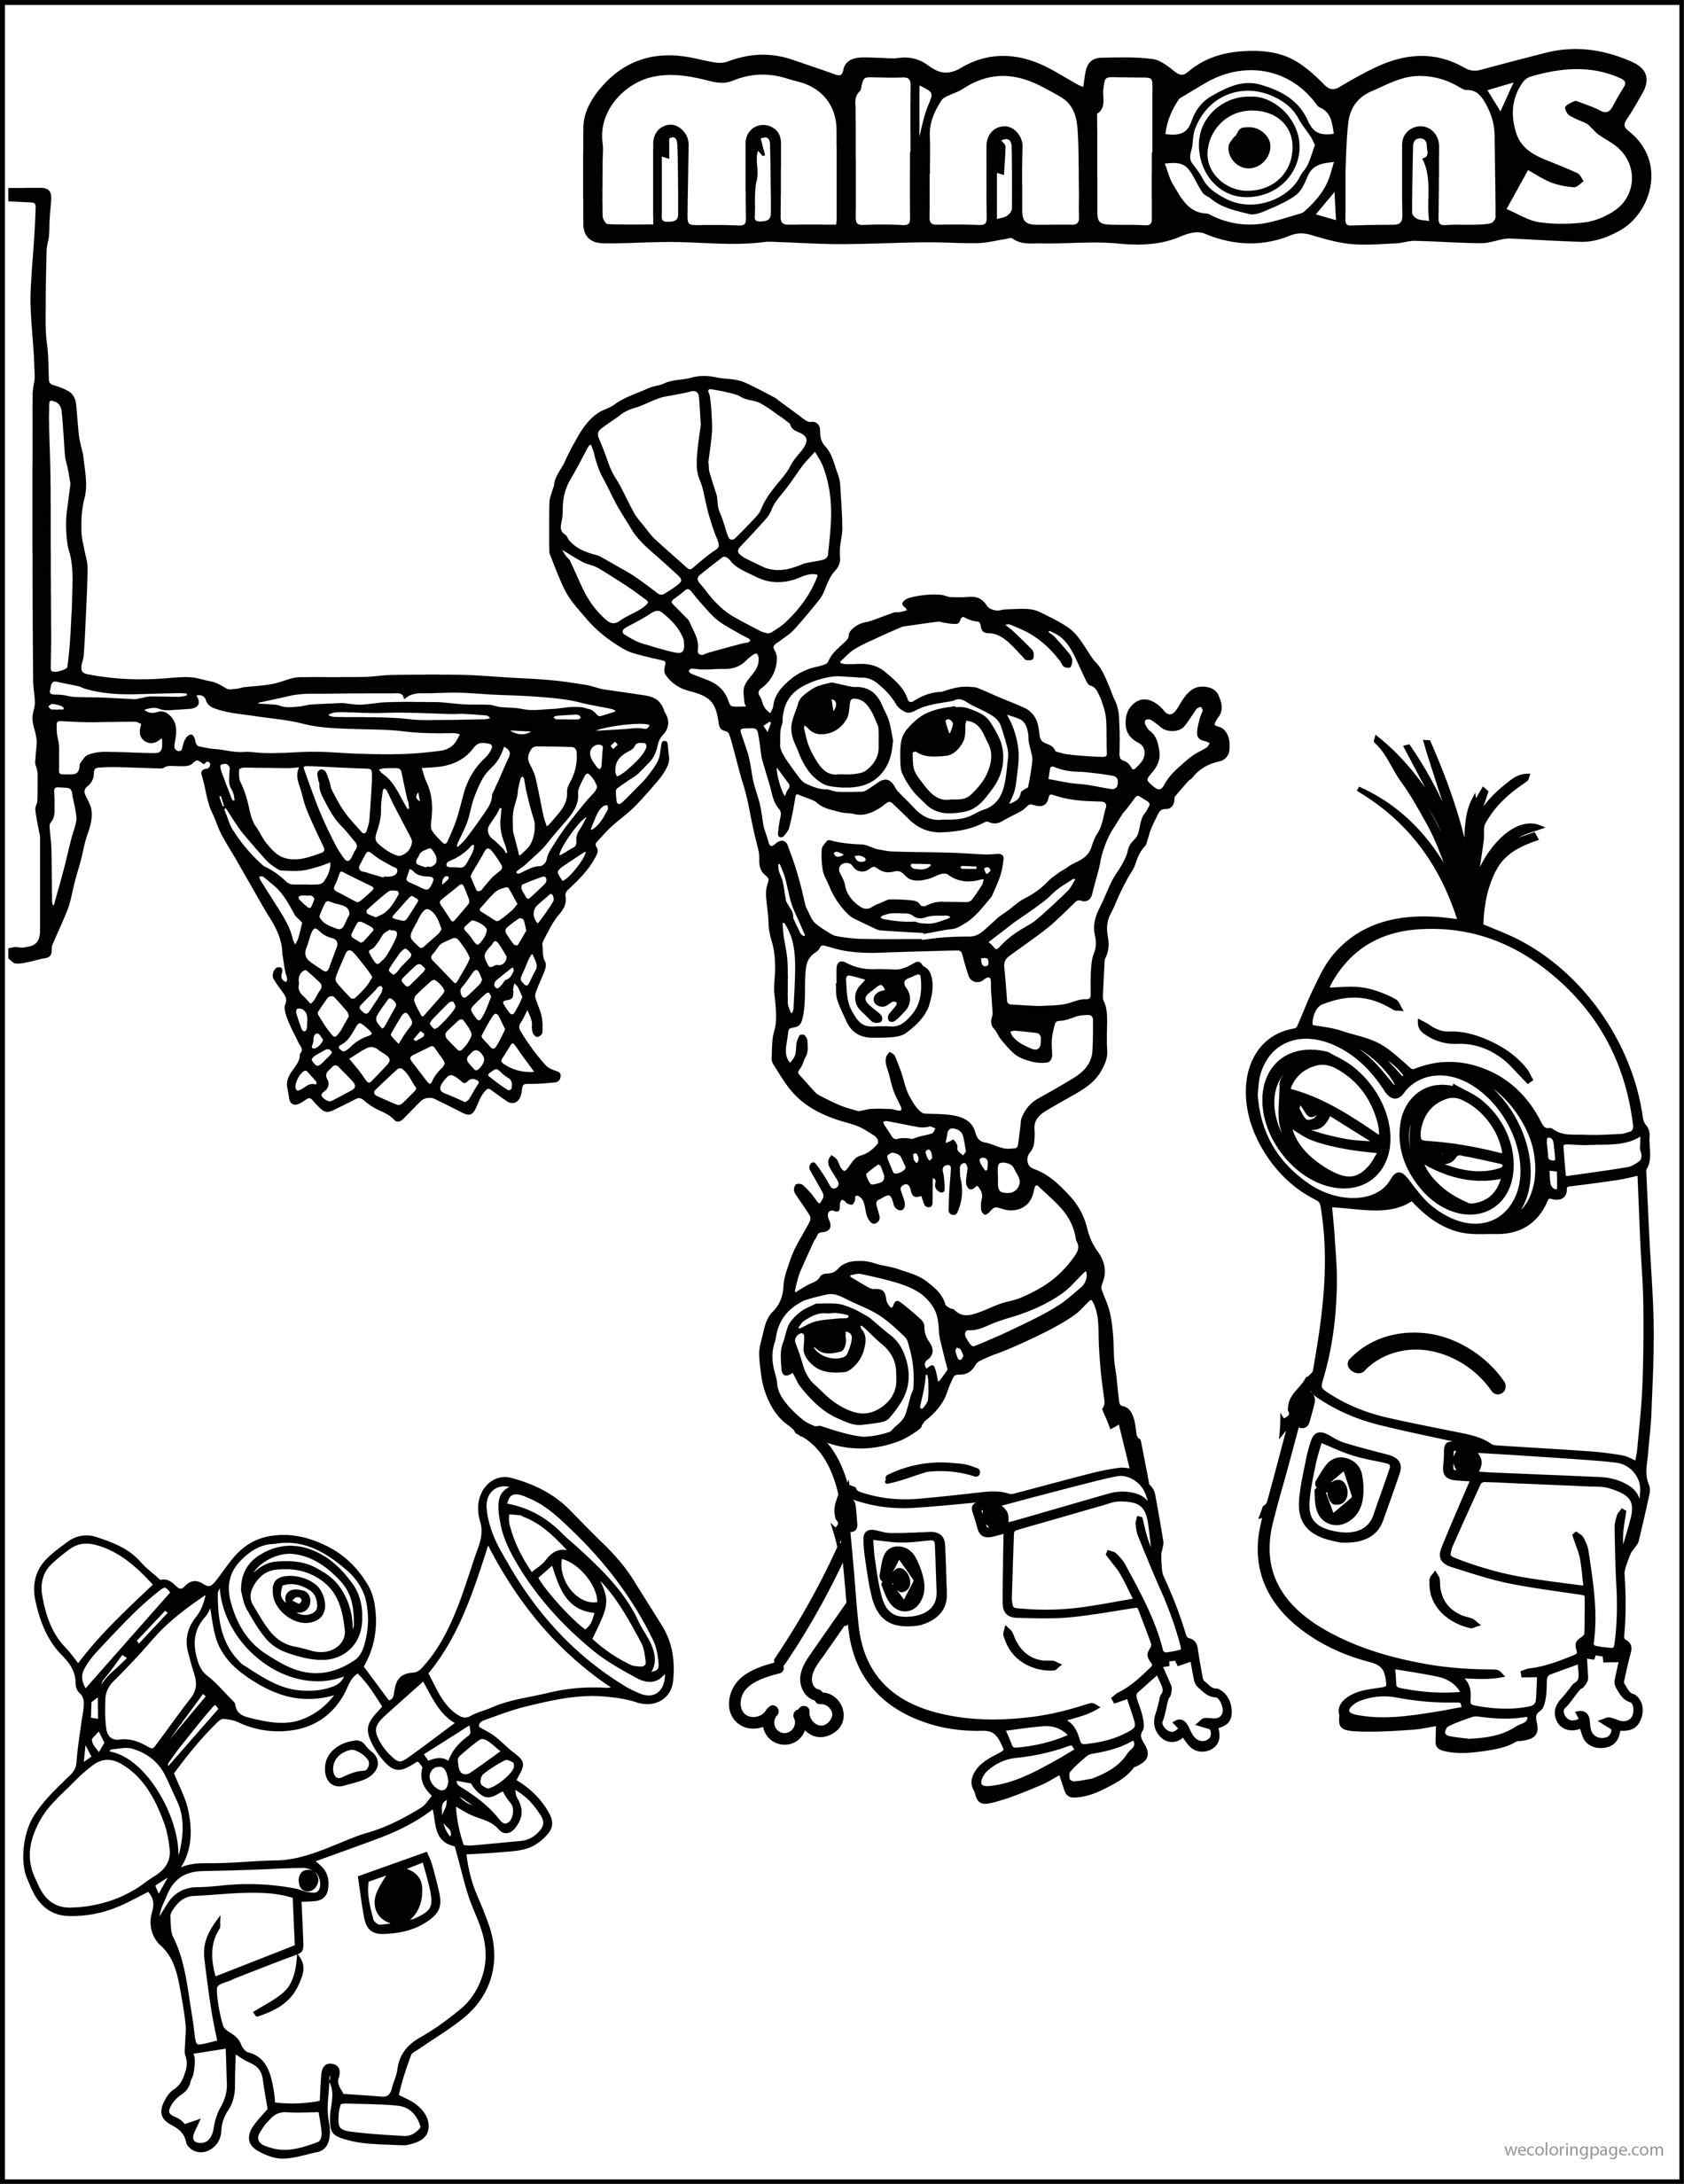 Allen Iverson Coloring Pages At Getcolorings